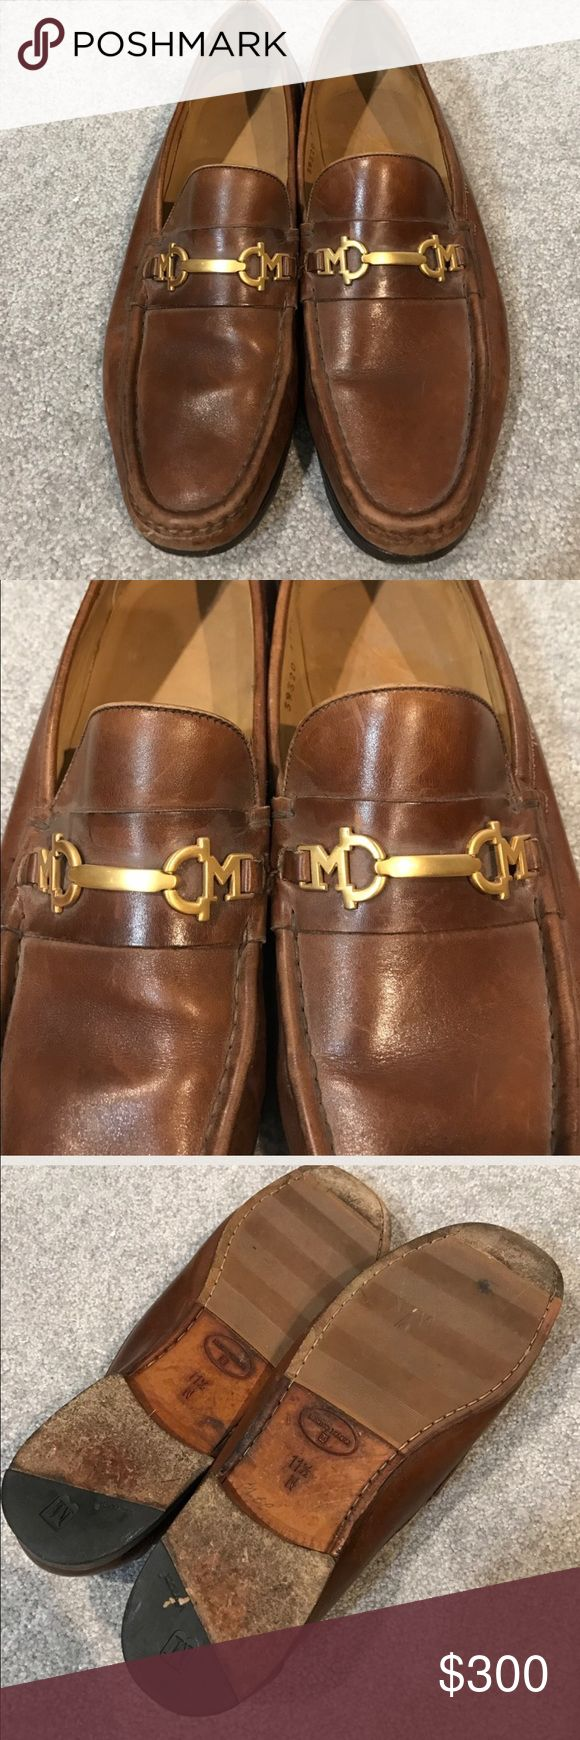 BRUNO MAGLI LOAFERS 11.5. N BRUNO MAGLI LOAFERS 11.5. N  still a lot of life left in these shoes. It brought to a shoemaker to clean up they would look fabulous.  But does not need to be brought there to wear. Bruno Magli Shoes Loafers & Slip-Ons